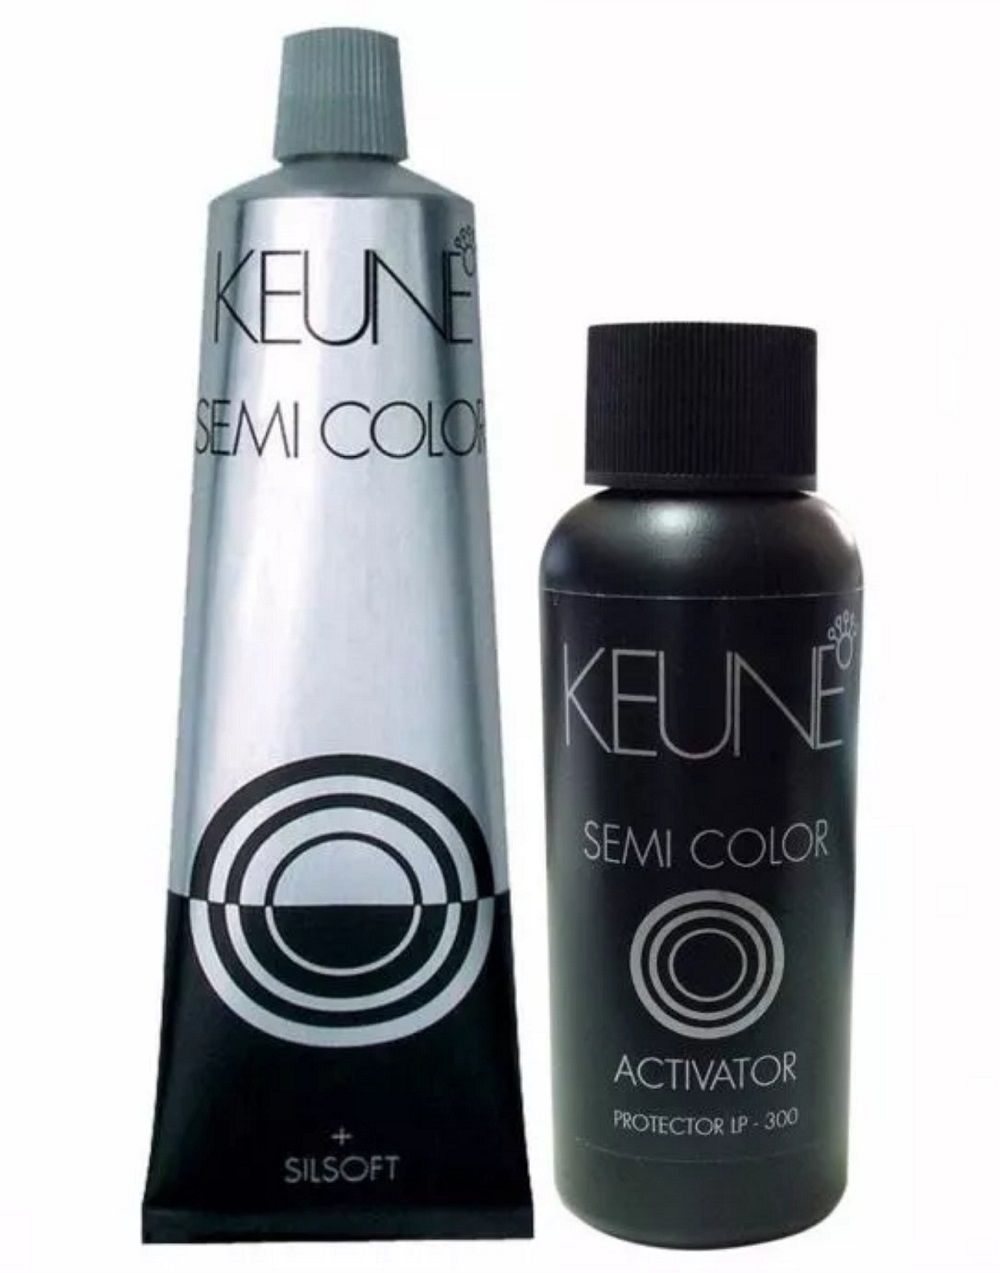 Kit Keune Semi Color 60ml - Cor 5.4 - Castanho Claro Cobre + Ativador 60ml